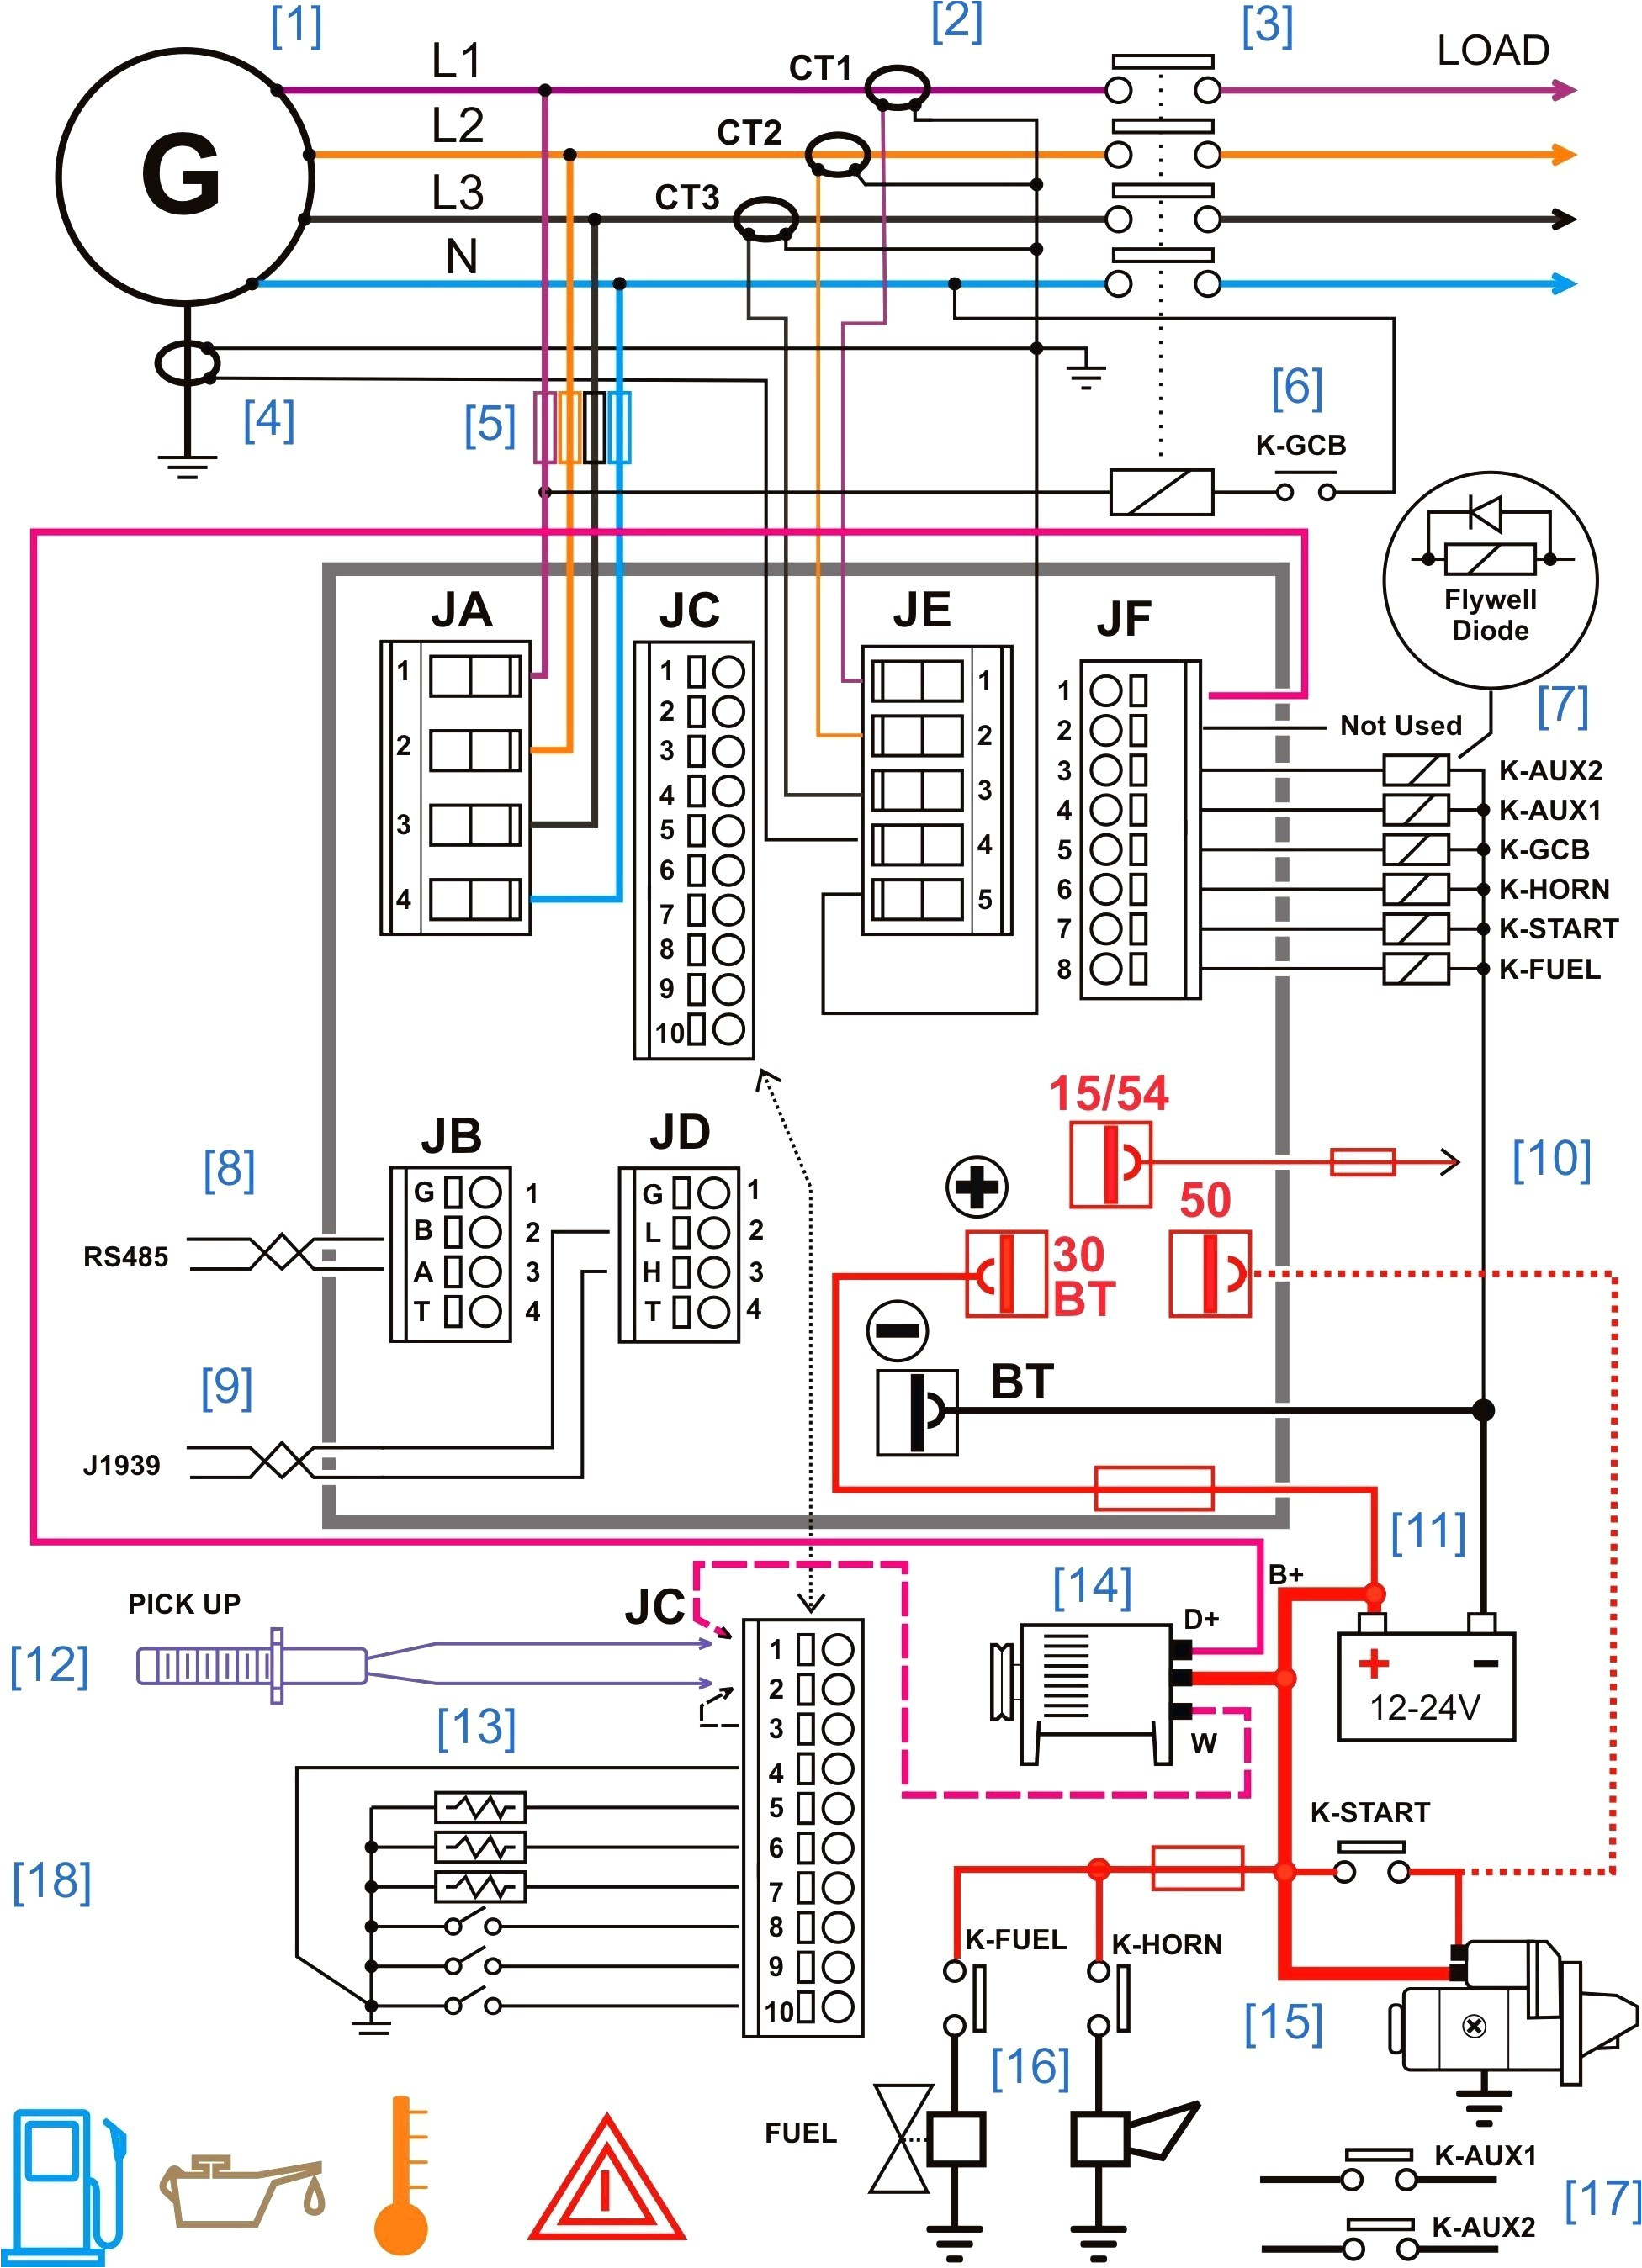 Wire Diagrams for Cars Vehicle Wiring Diagrams Beautiful Car Wiring Harness Diagram Unique